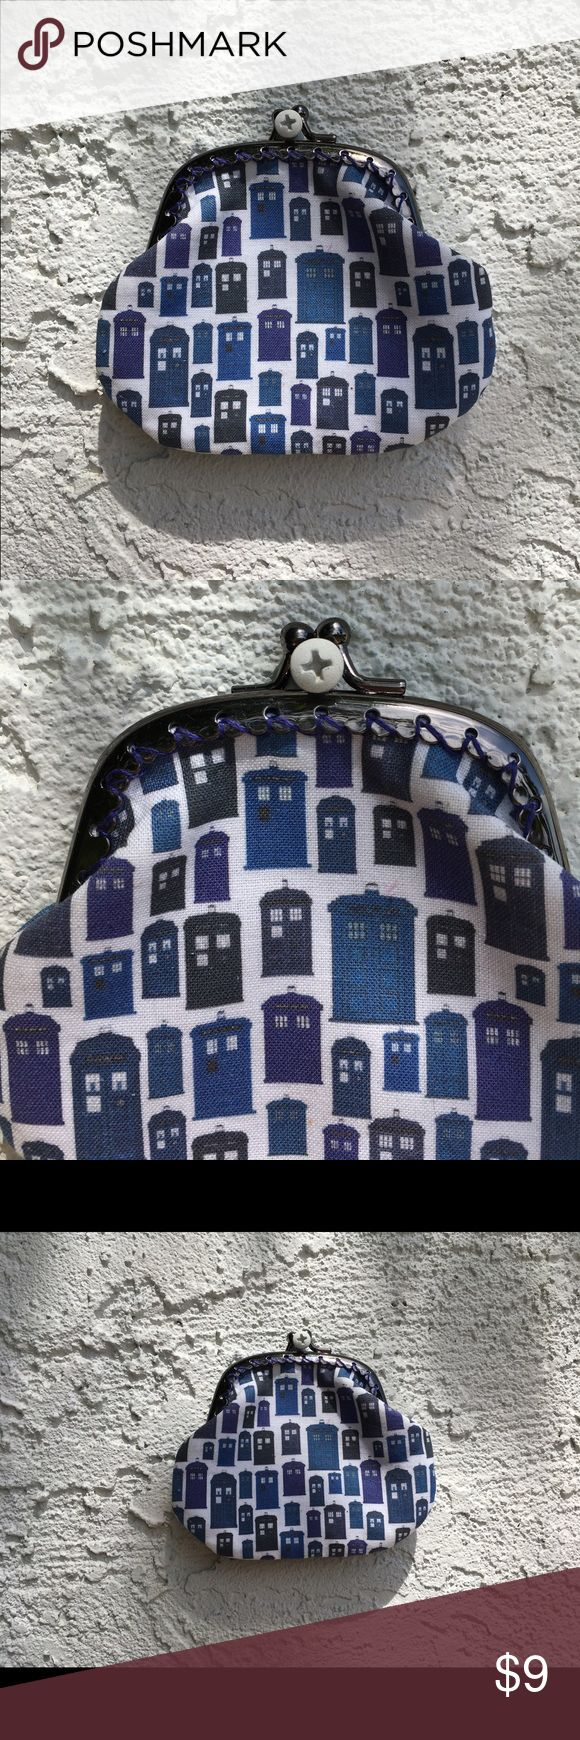 Doctor Who Coin Purse Selling this coin purse for all Doctor Who lovers! Small, cute, awesome material. 💙 Doctor Who Other